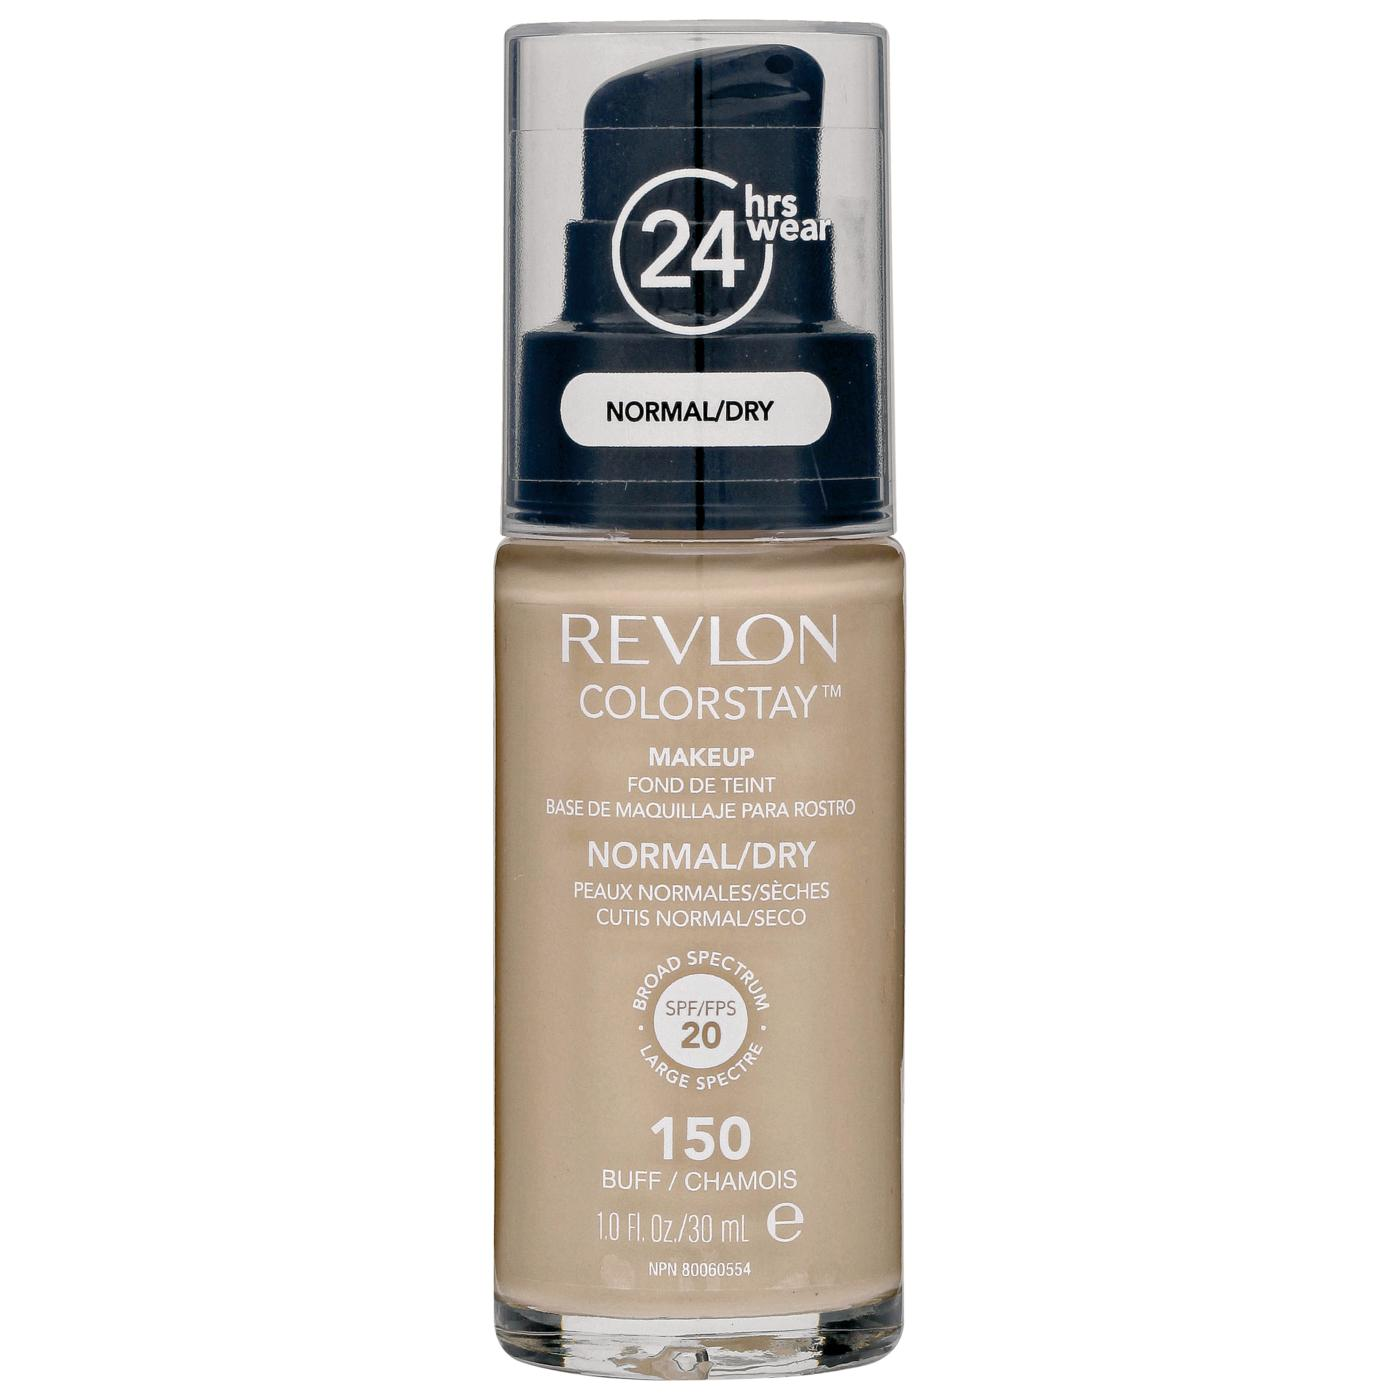 Revlon Colorstay Makeup Normal Dry Skin Online Gunstig Kaufen